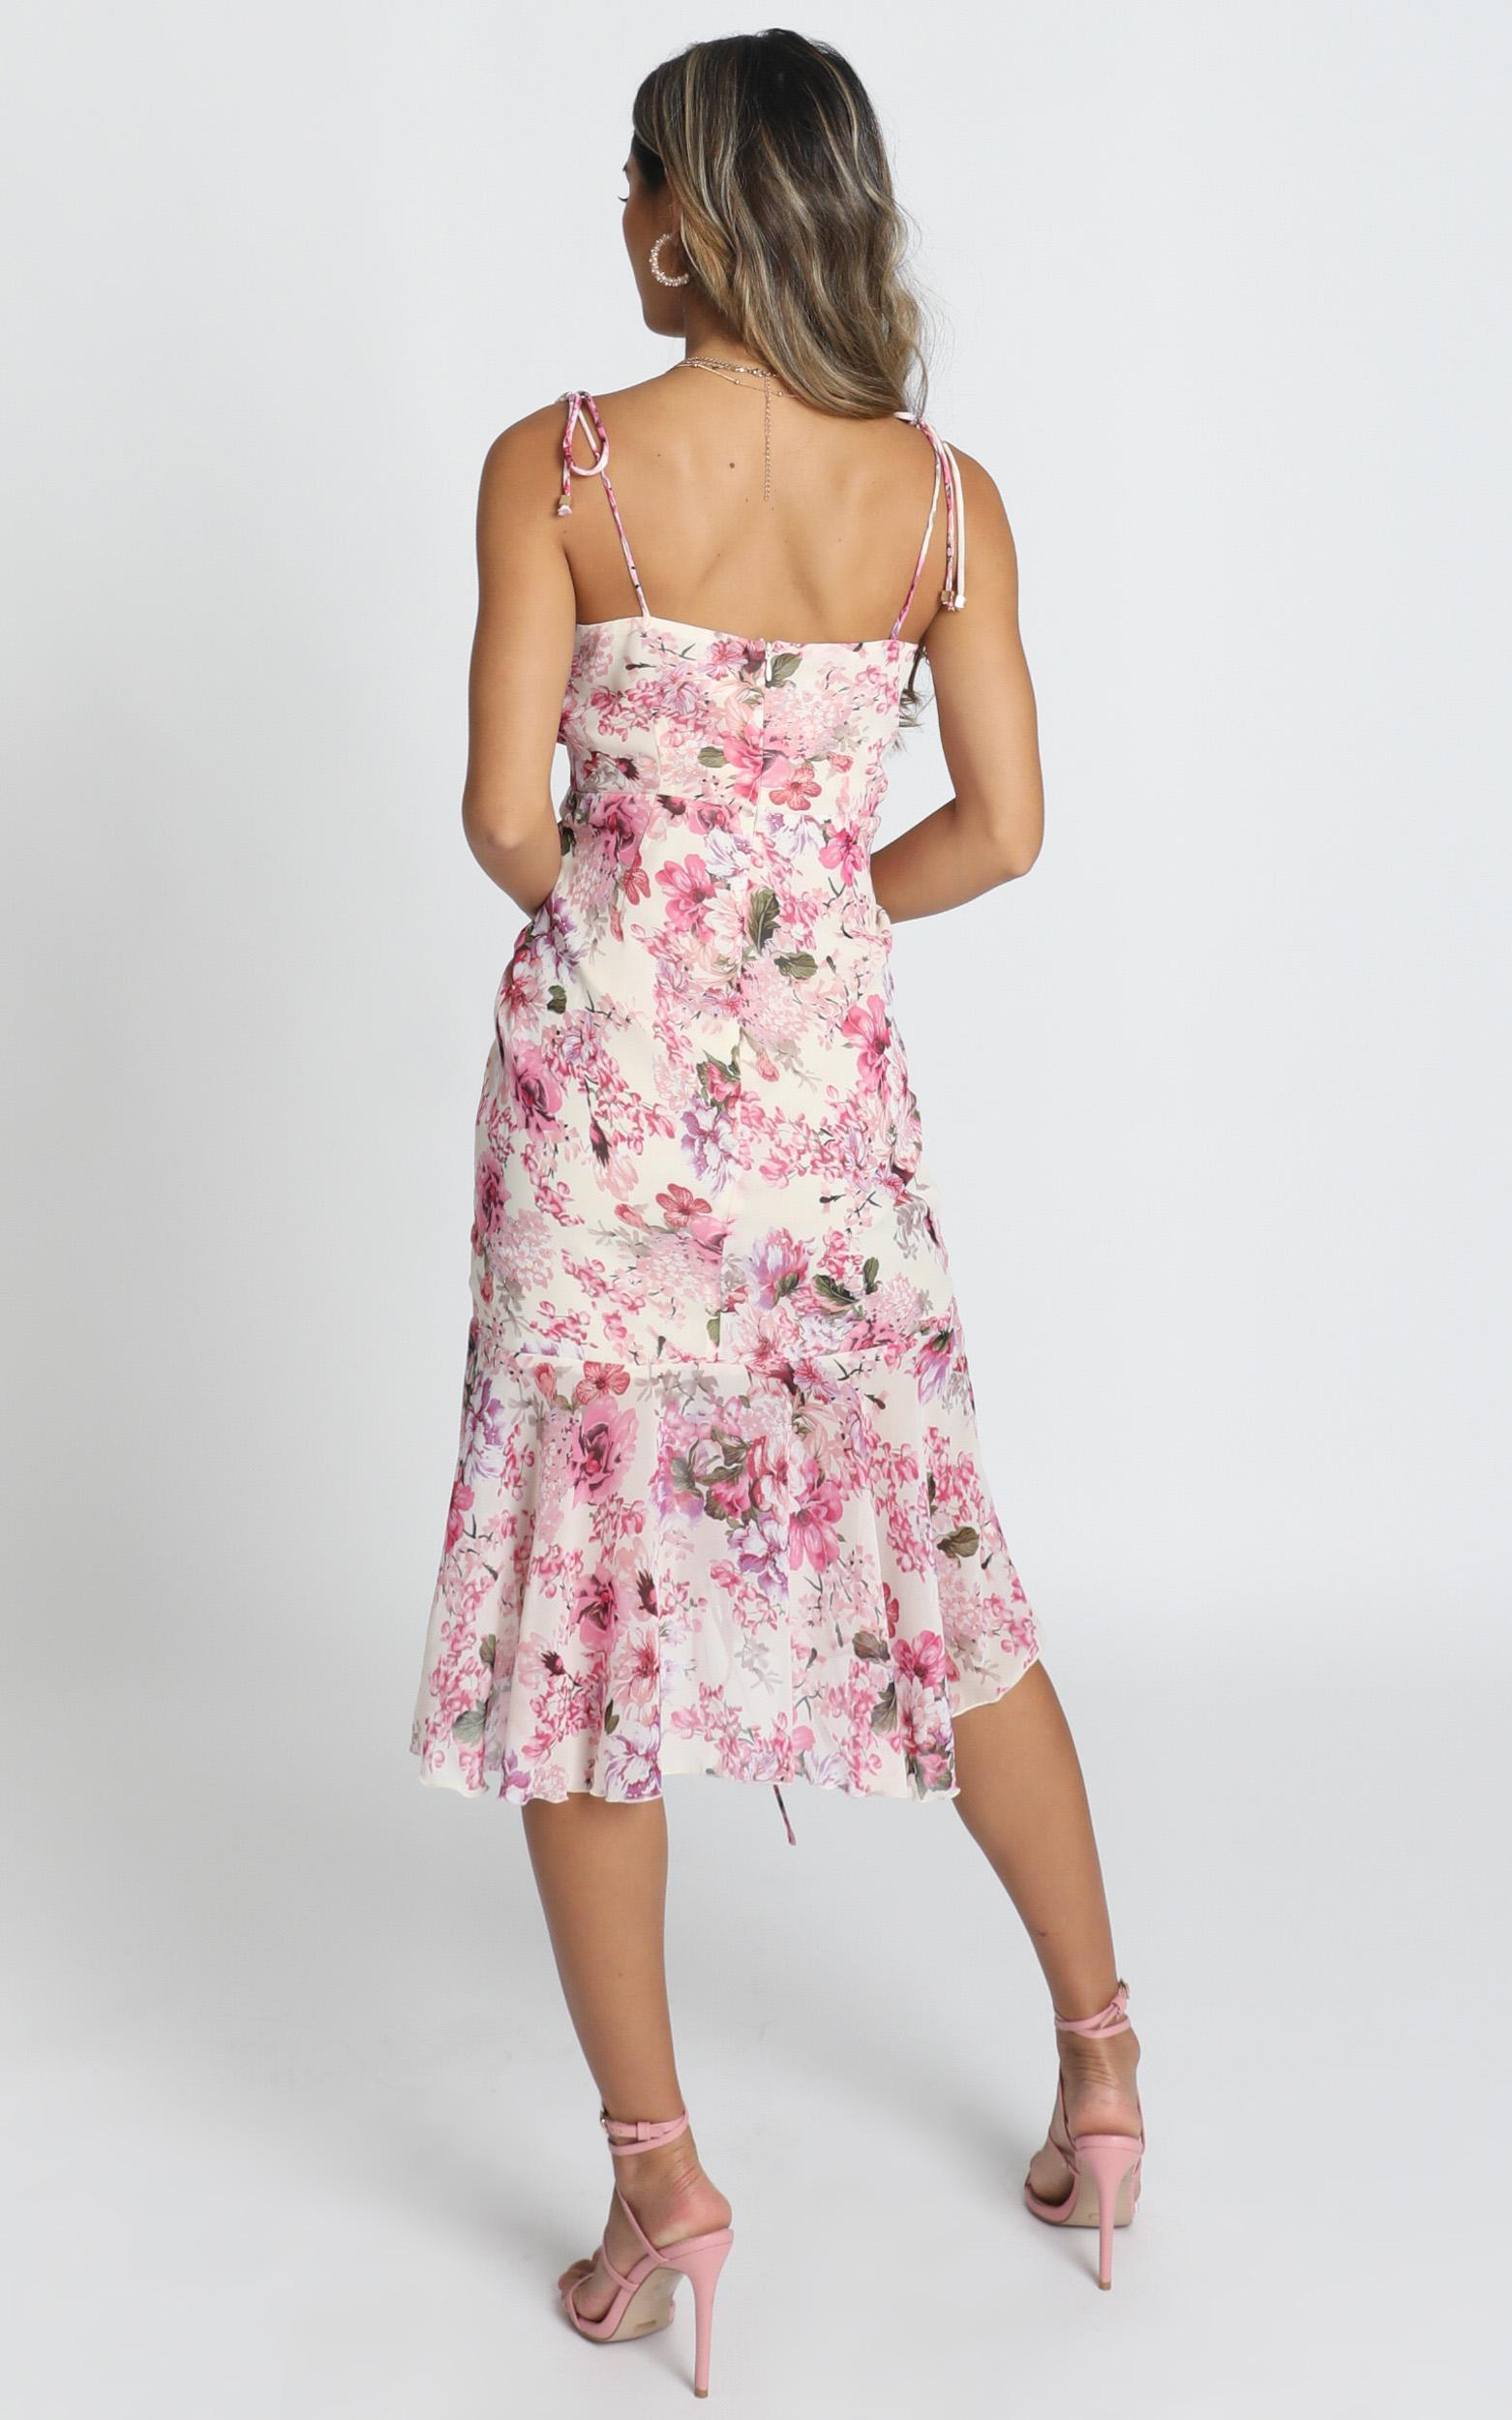 When Im With You Dress in pink floral - 4 (XXS), Pink, hi-res image number null